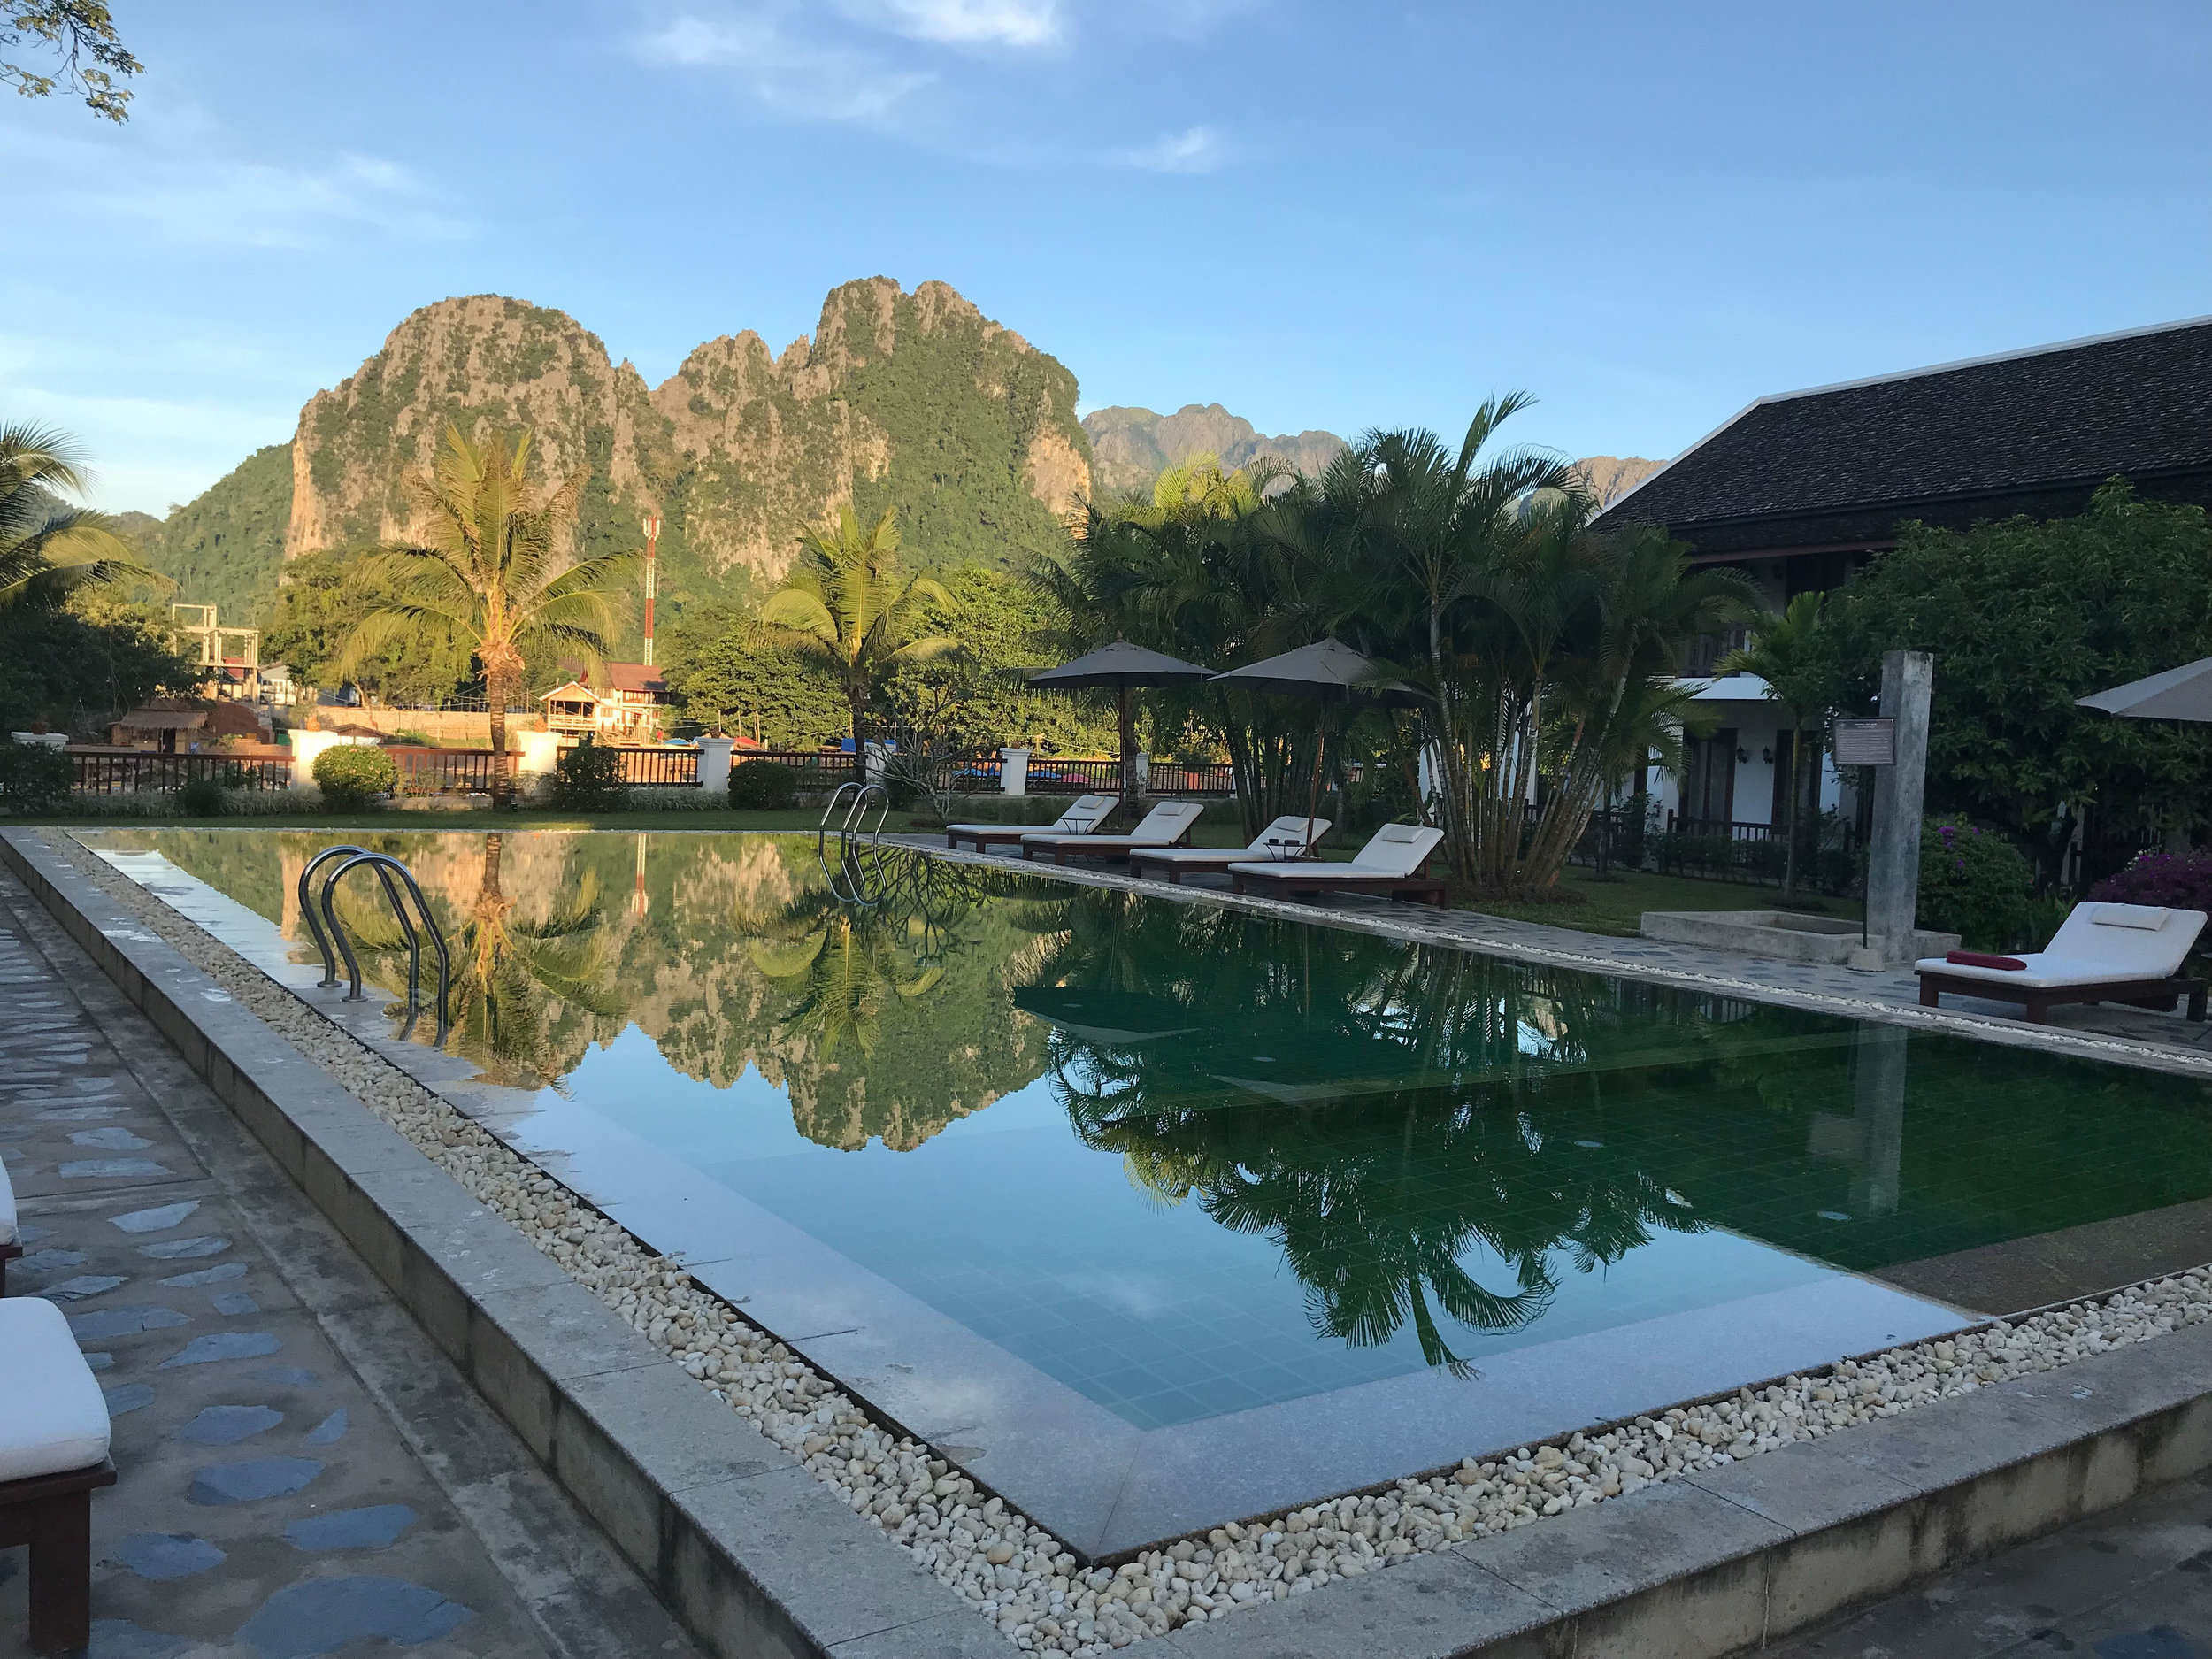 Karst mountains behind swimming pool, Riverside Boutique Resort, Vang Vieng, Laos, 30 Nov 2017.jpg